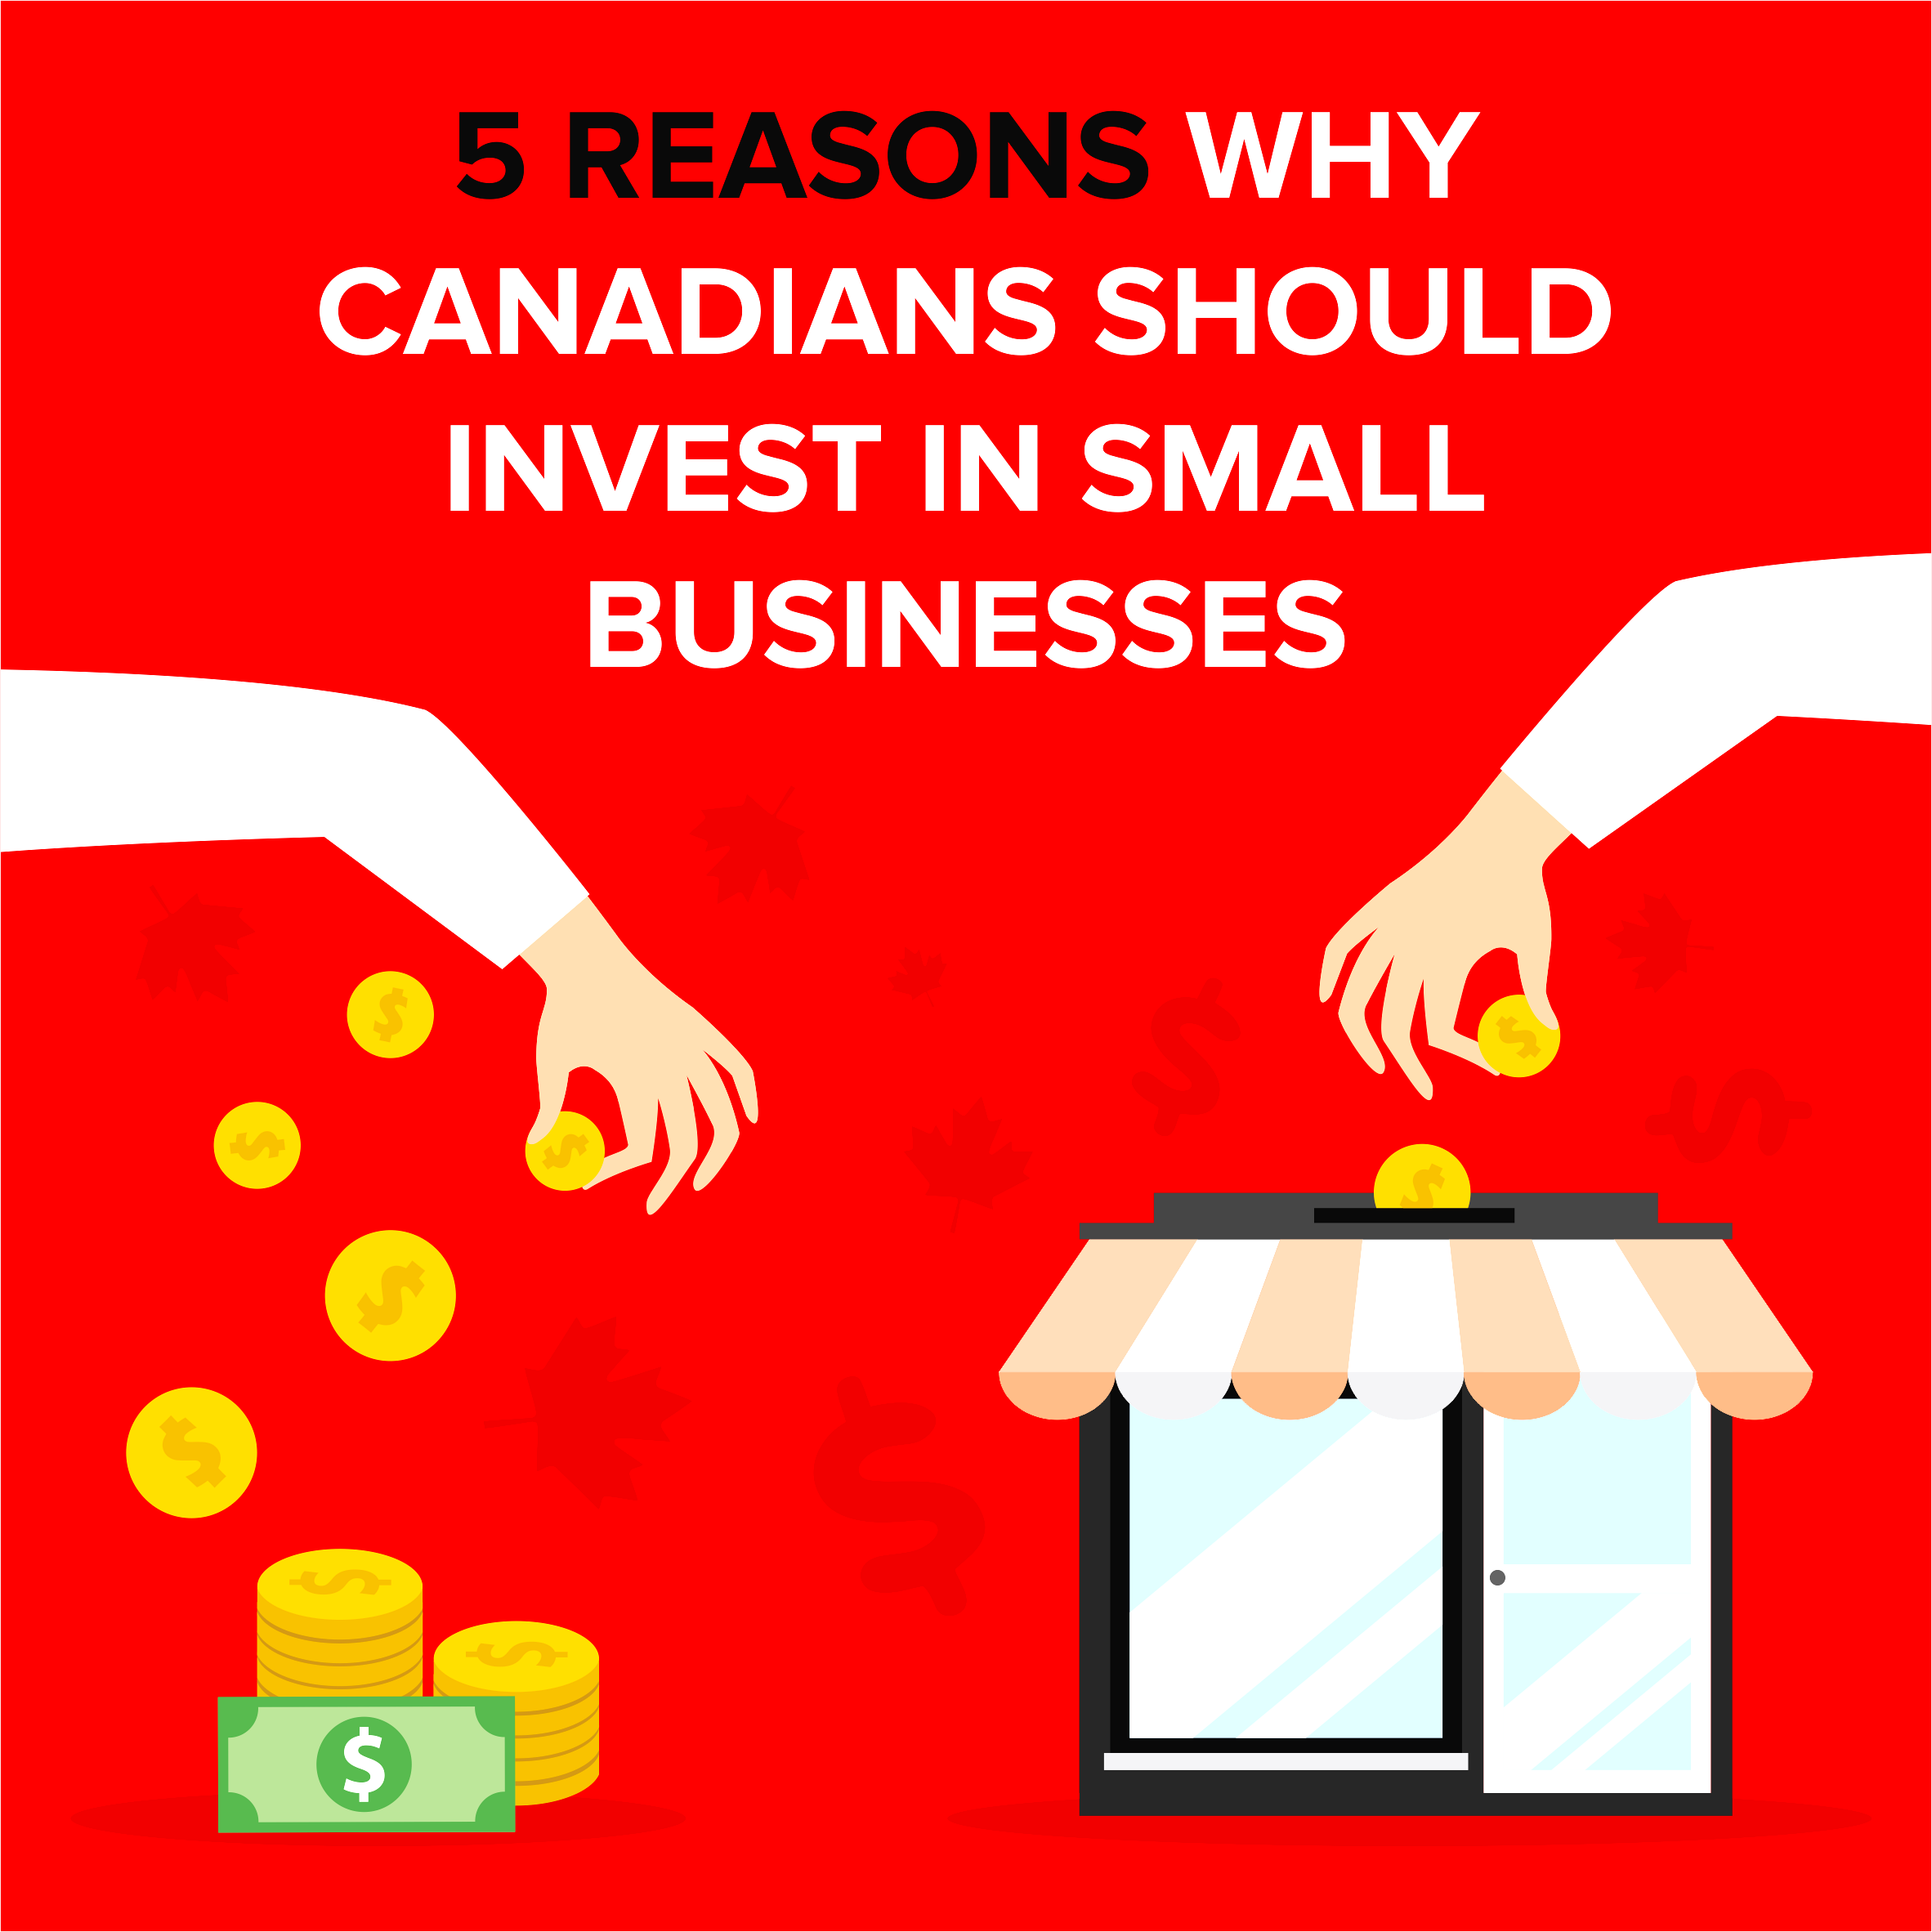 5 Reasons Why Canadians Should Invest In Small Businesses